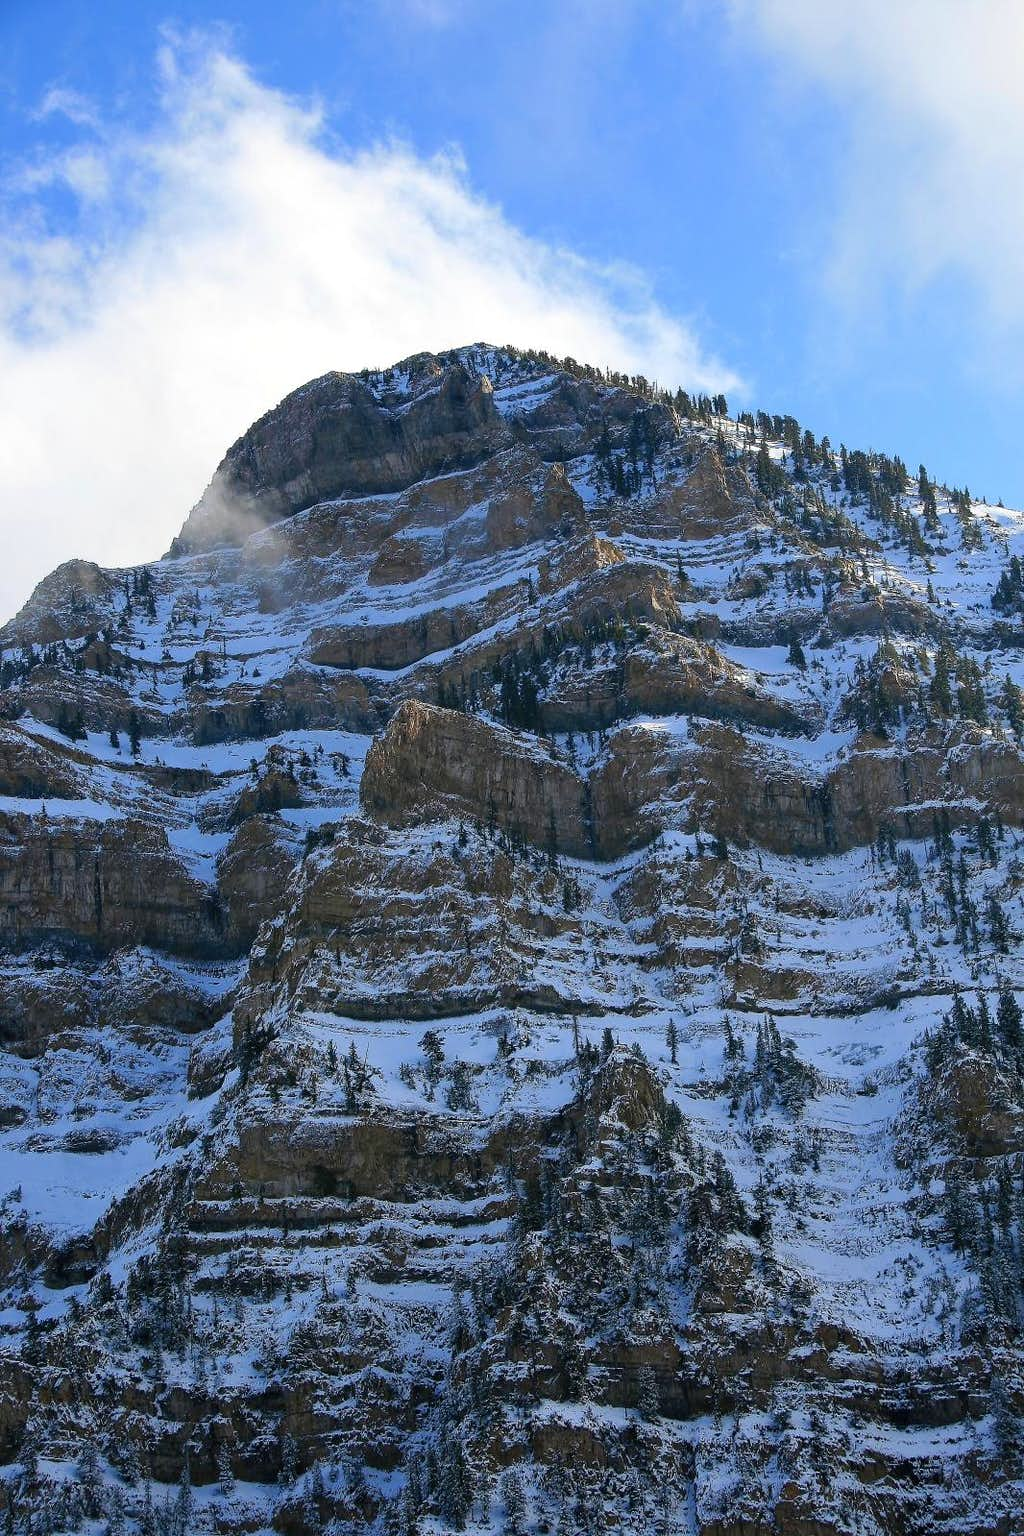 East Peak's north face.